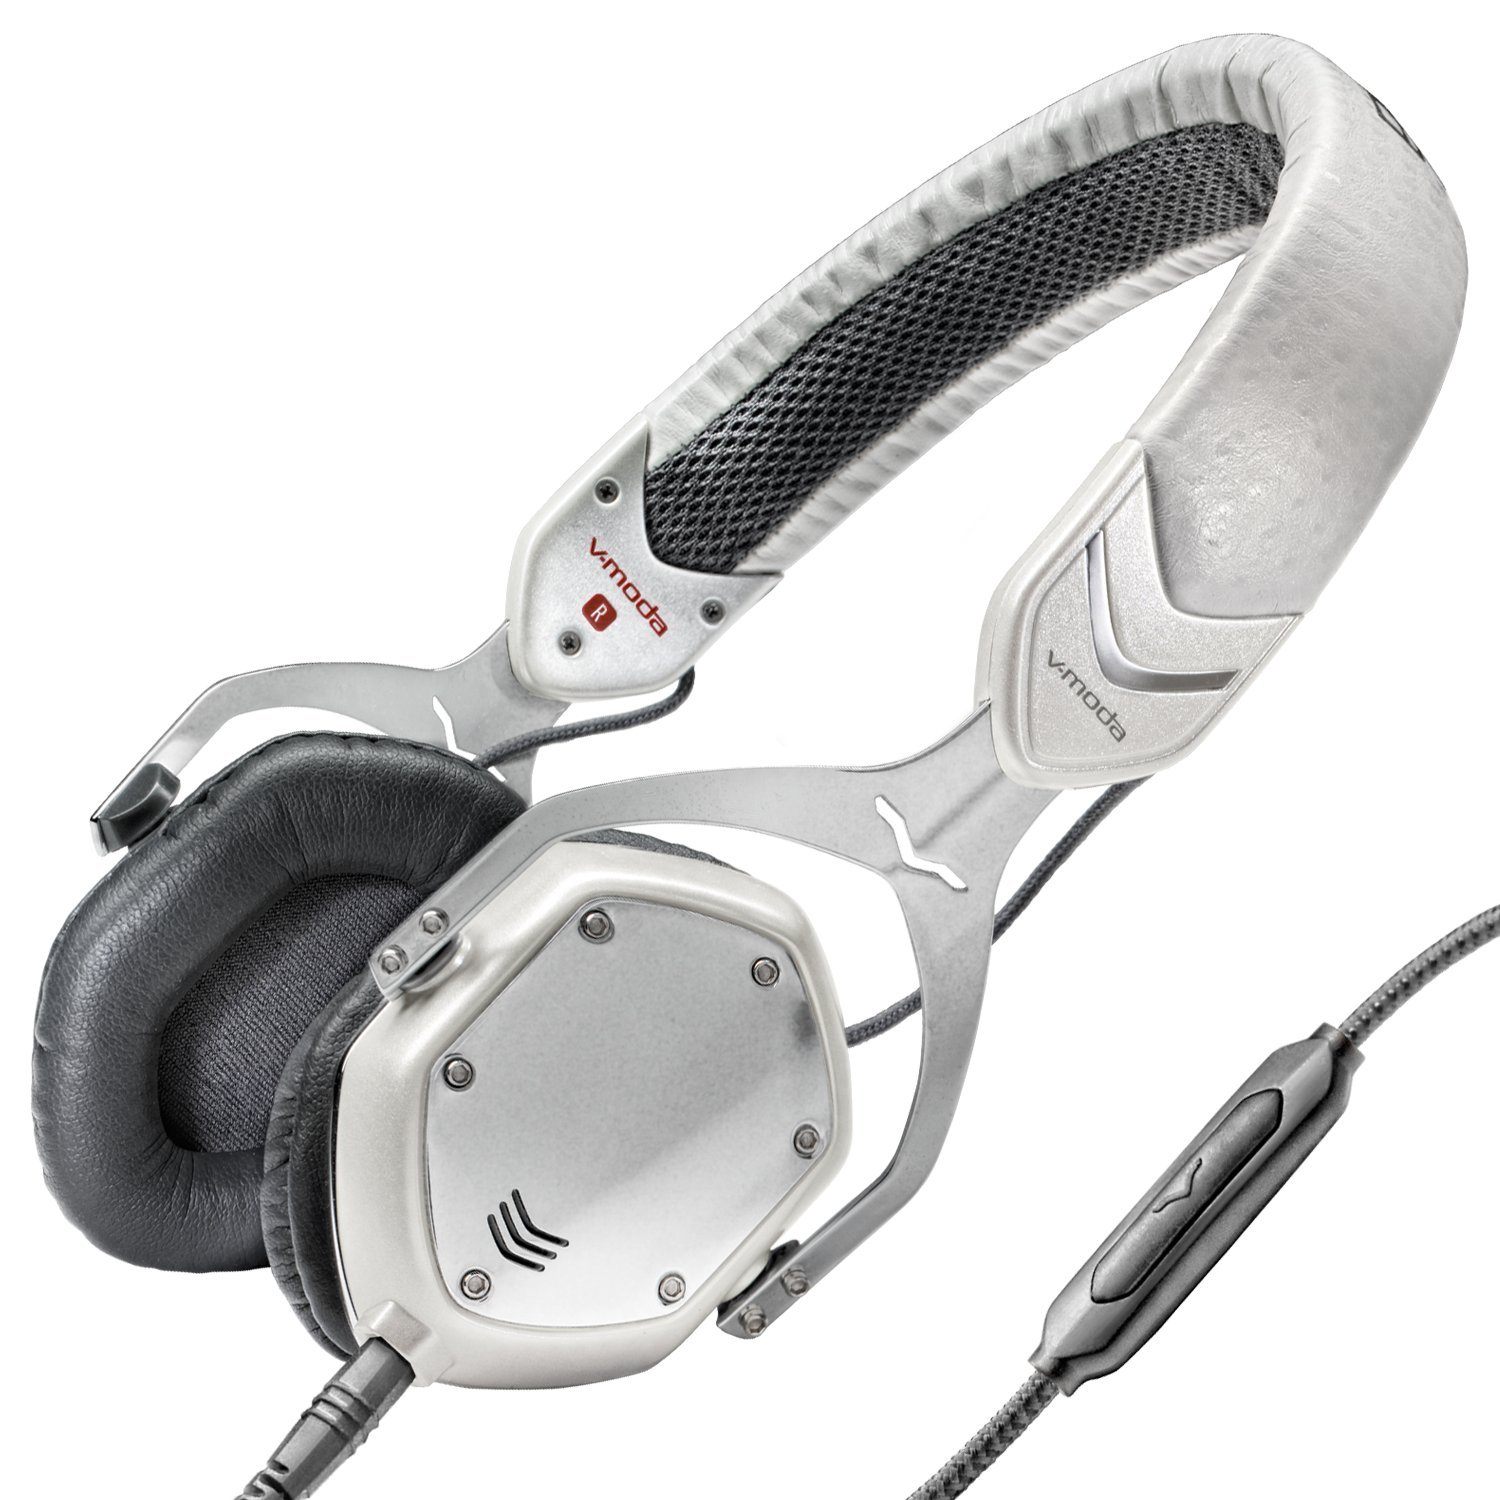 V-MODA Crossfade M-80 Vocal On-Ear Noise-Isolating Metal Headphone, White Silver by V-MODA